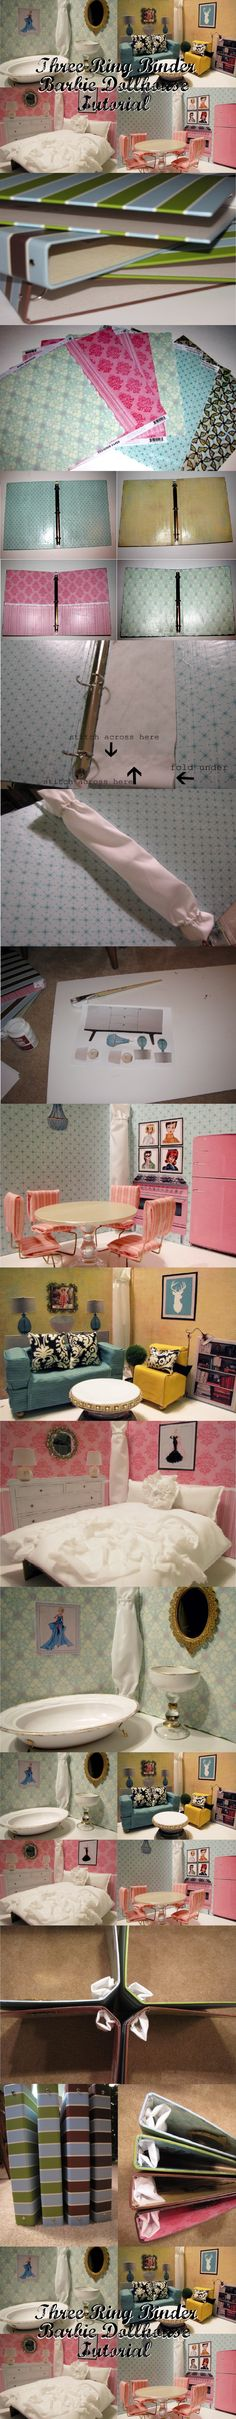 Three ring binder Barbie doll house - inexpensive, compact, cute!  I like this idea but for my son to create different boyish scene backgrounds for stop motion movies!